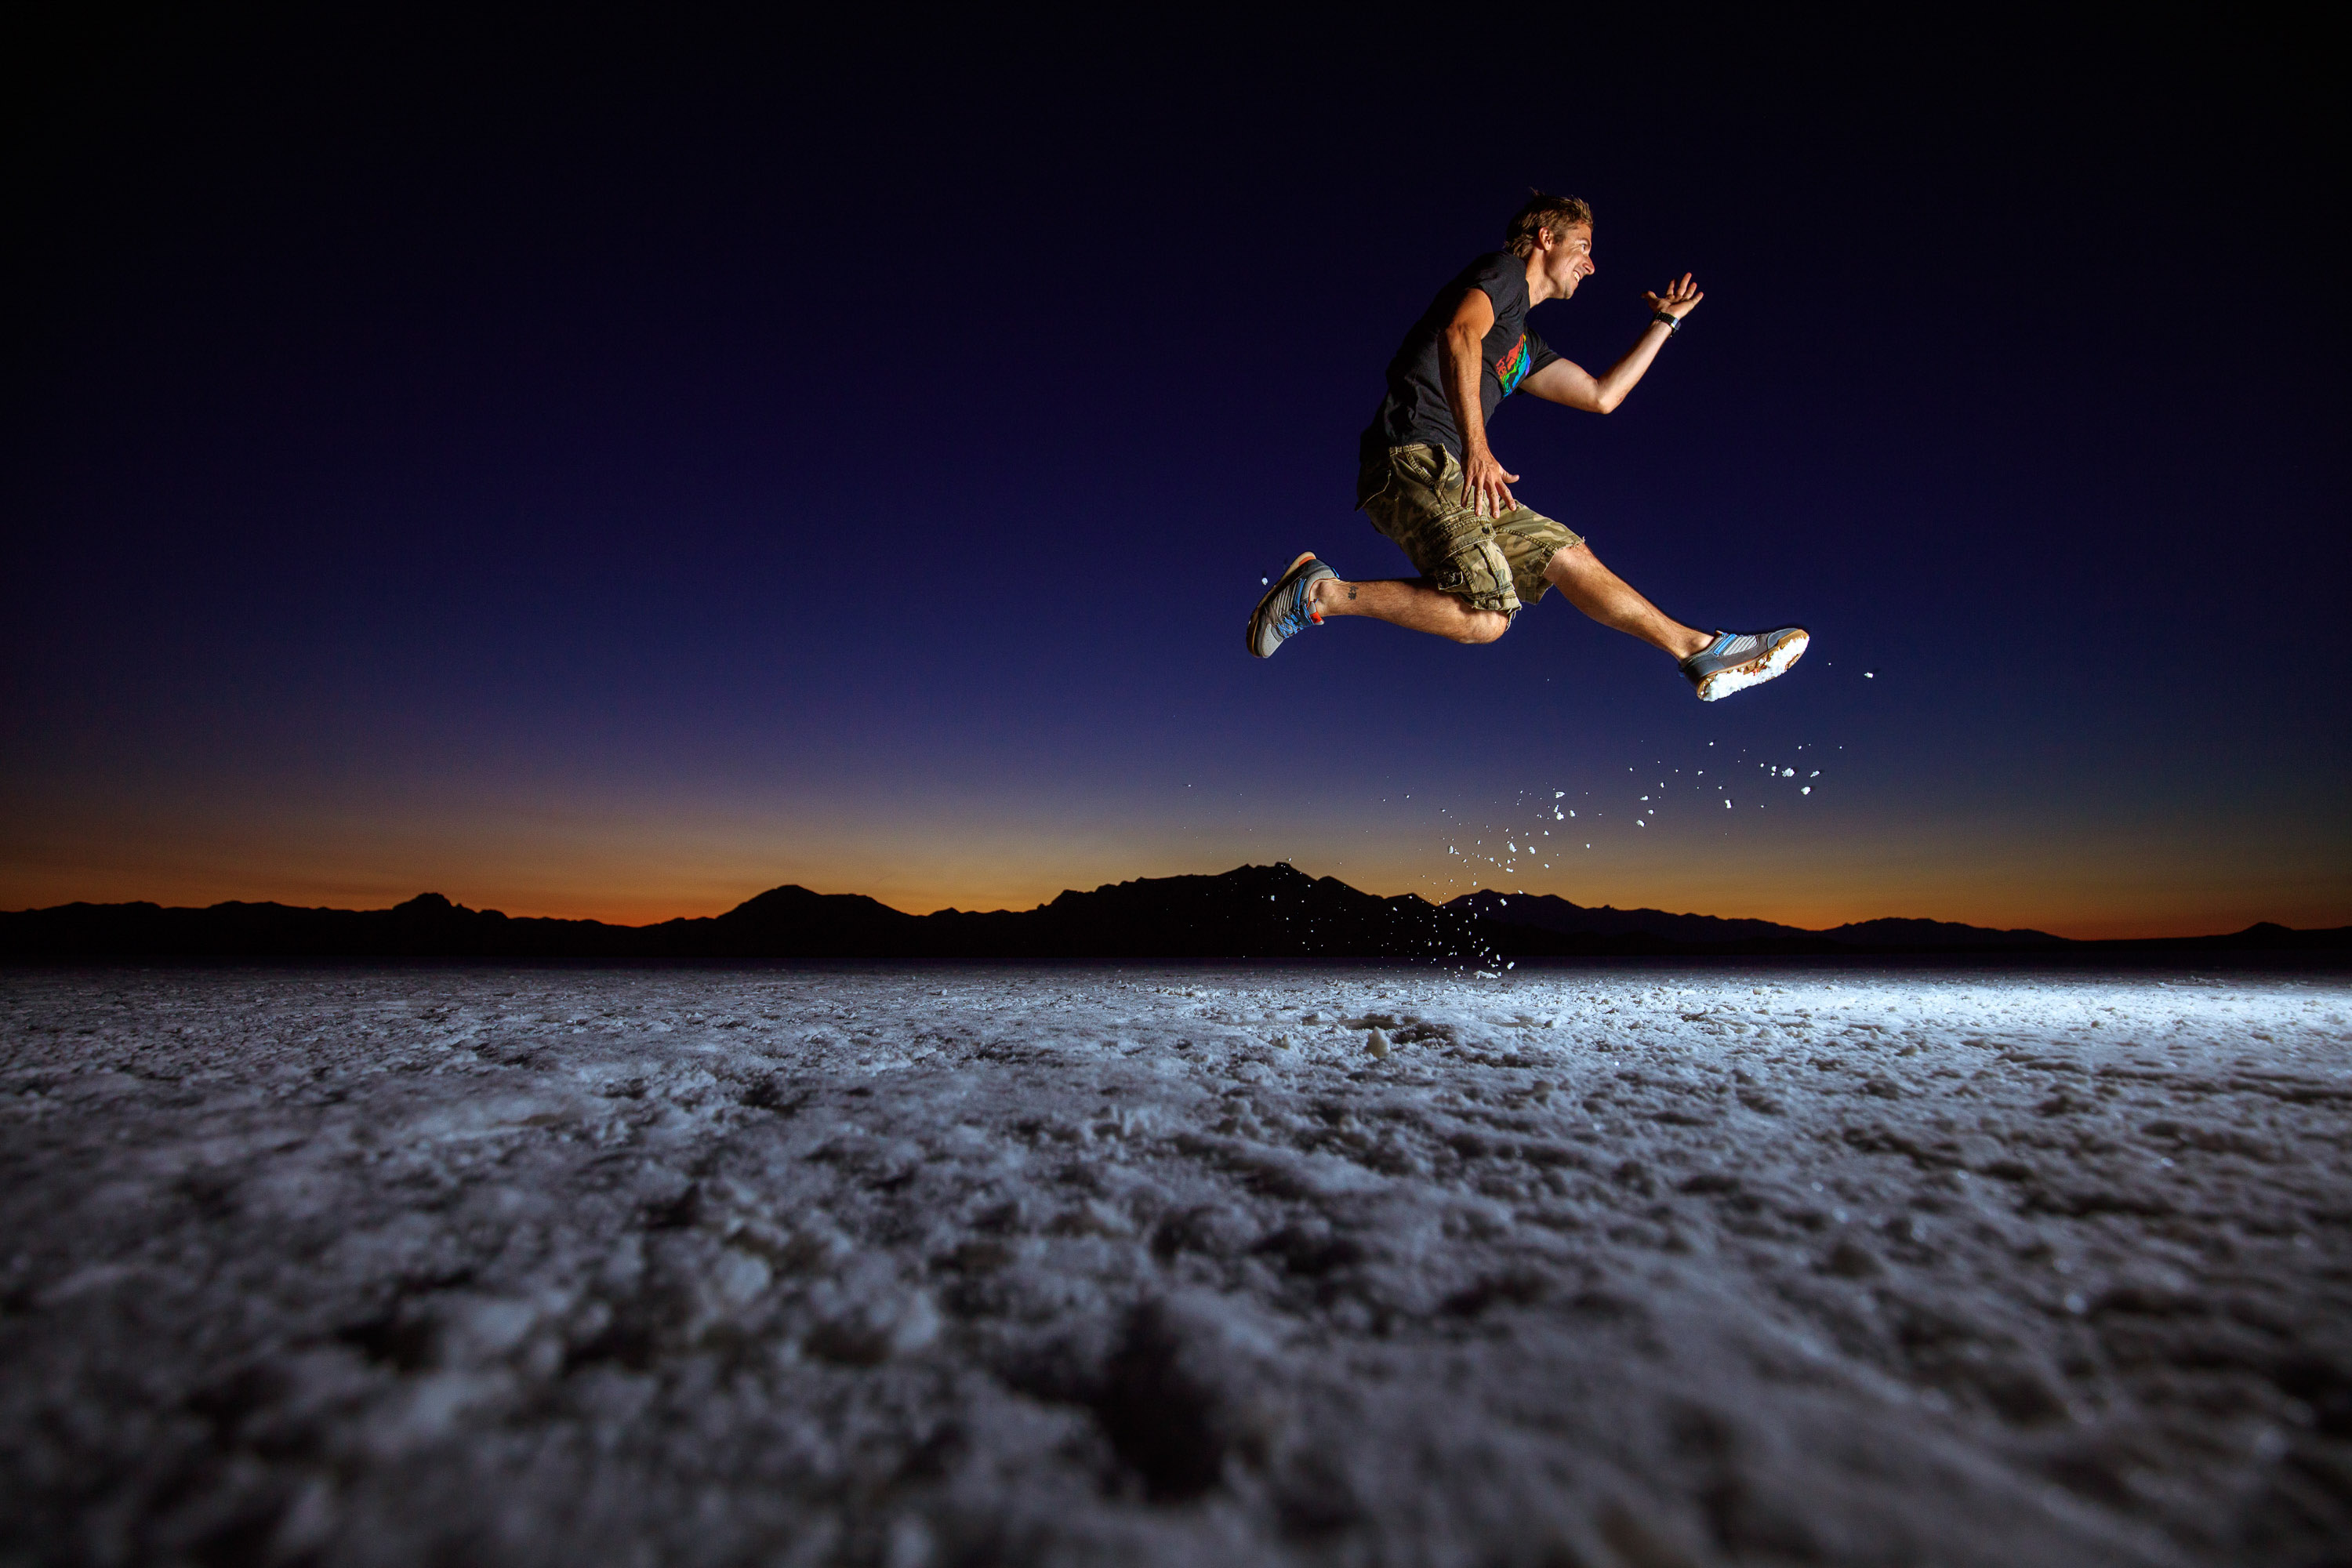 Shoe lifestyle photo of guy doing a jump at dusk on Bonneville salt flats in Utah.